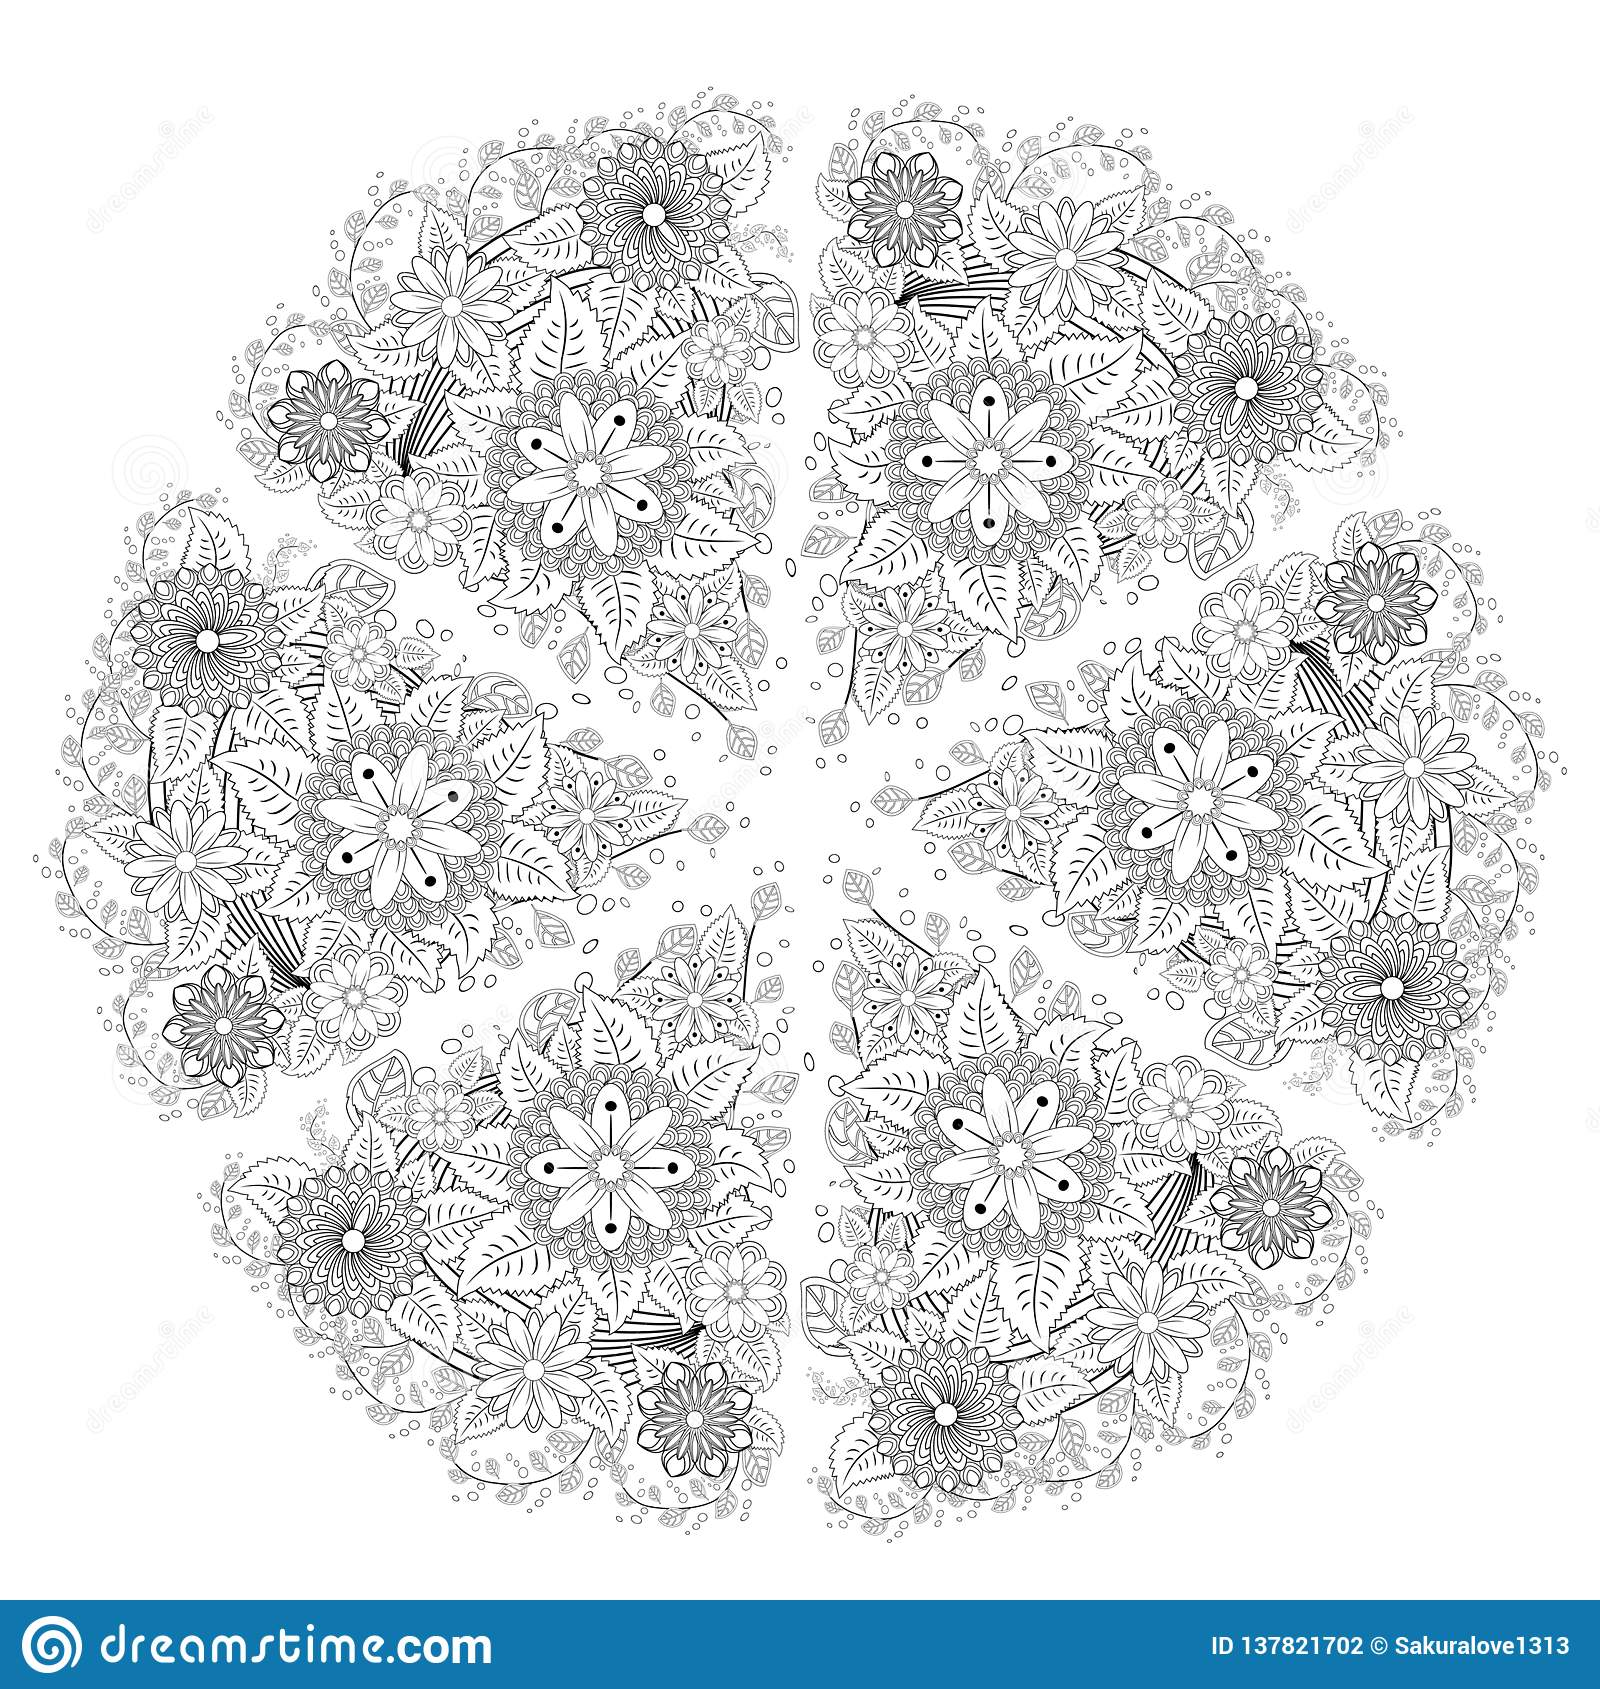 mandala isolated design element geometric line pattern stylized floral round ornament zen doodle art monochrome sketch coloring